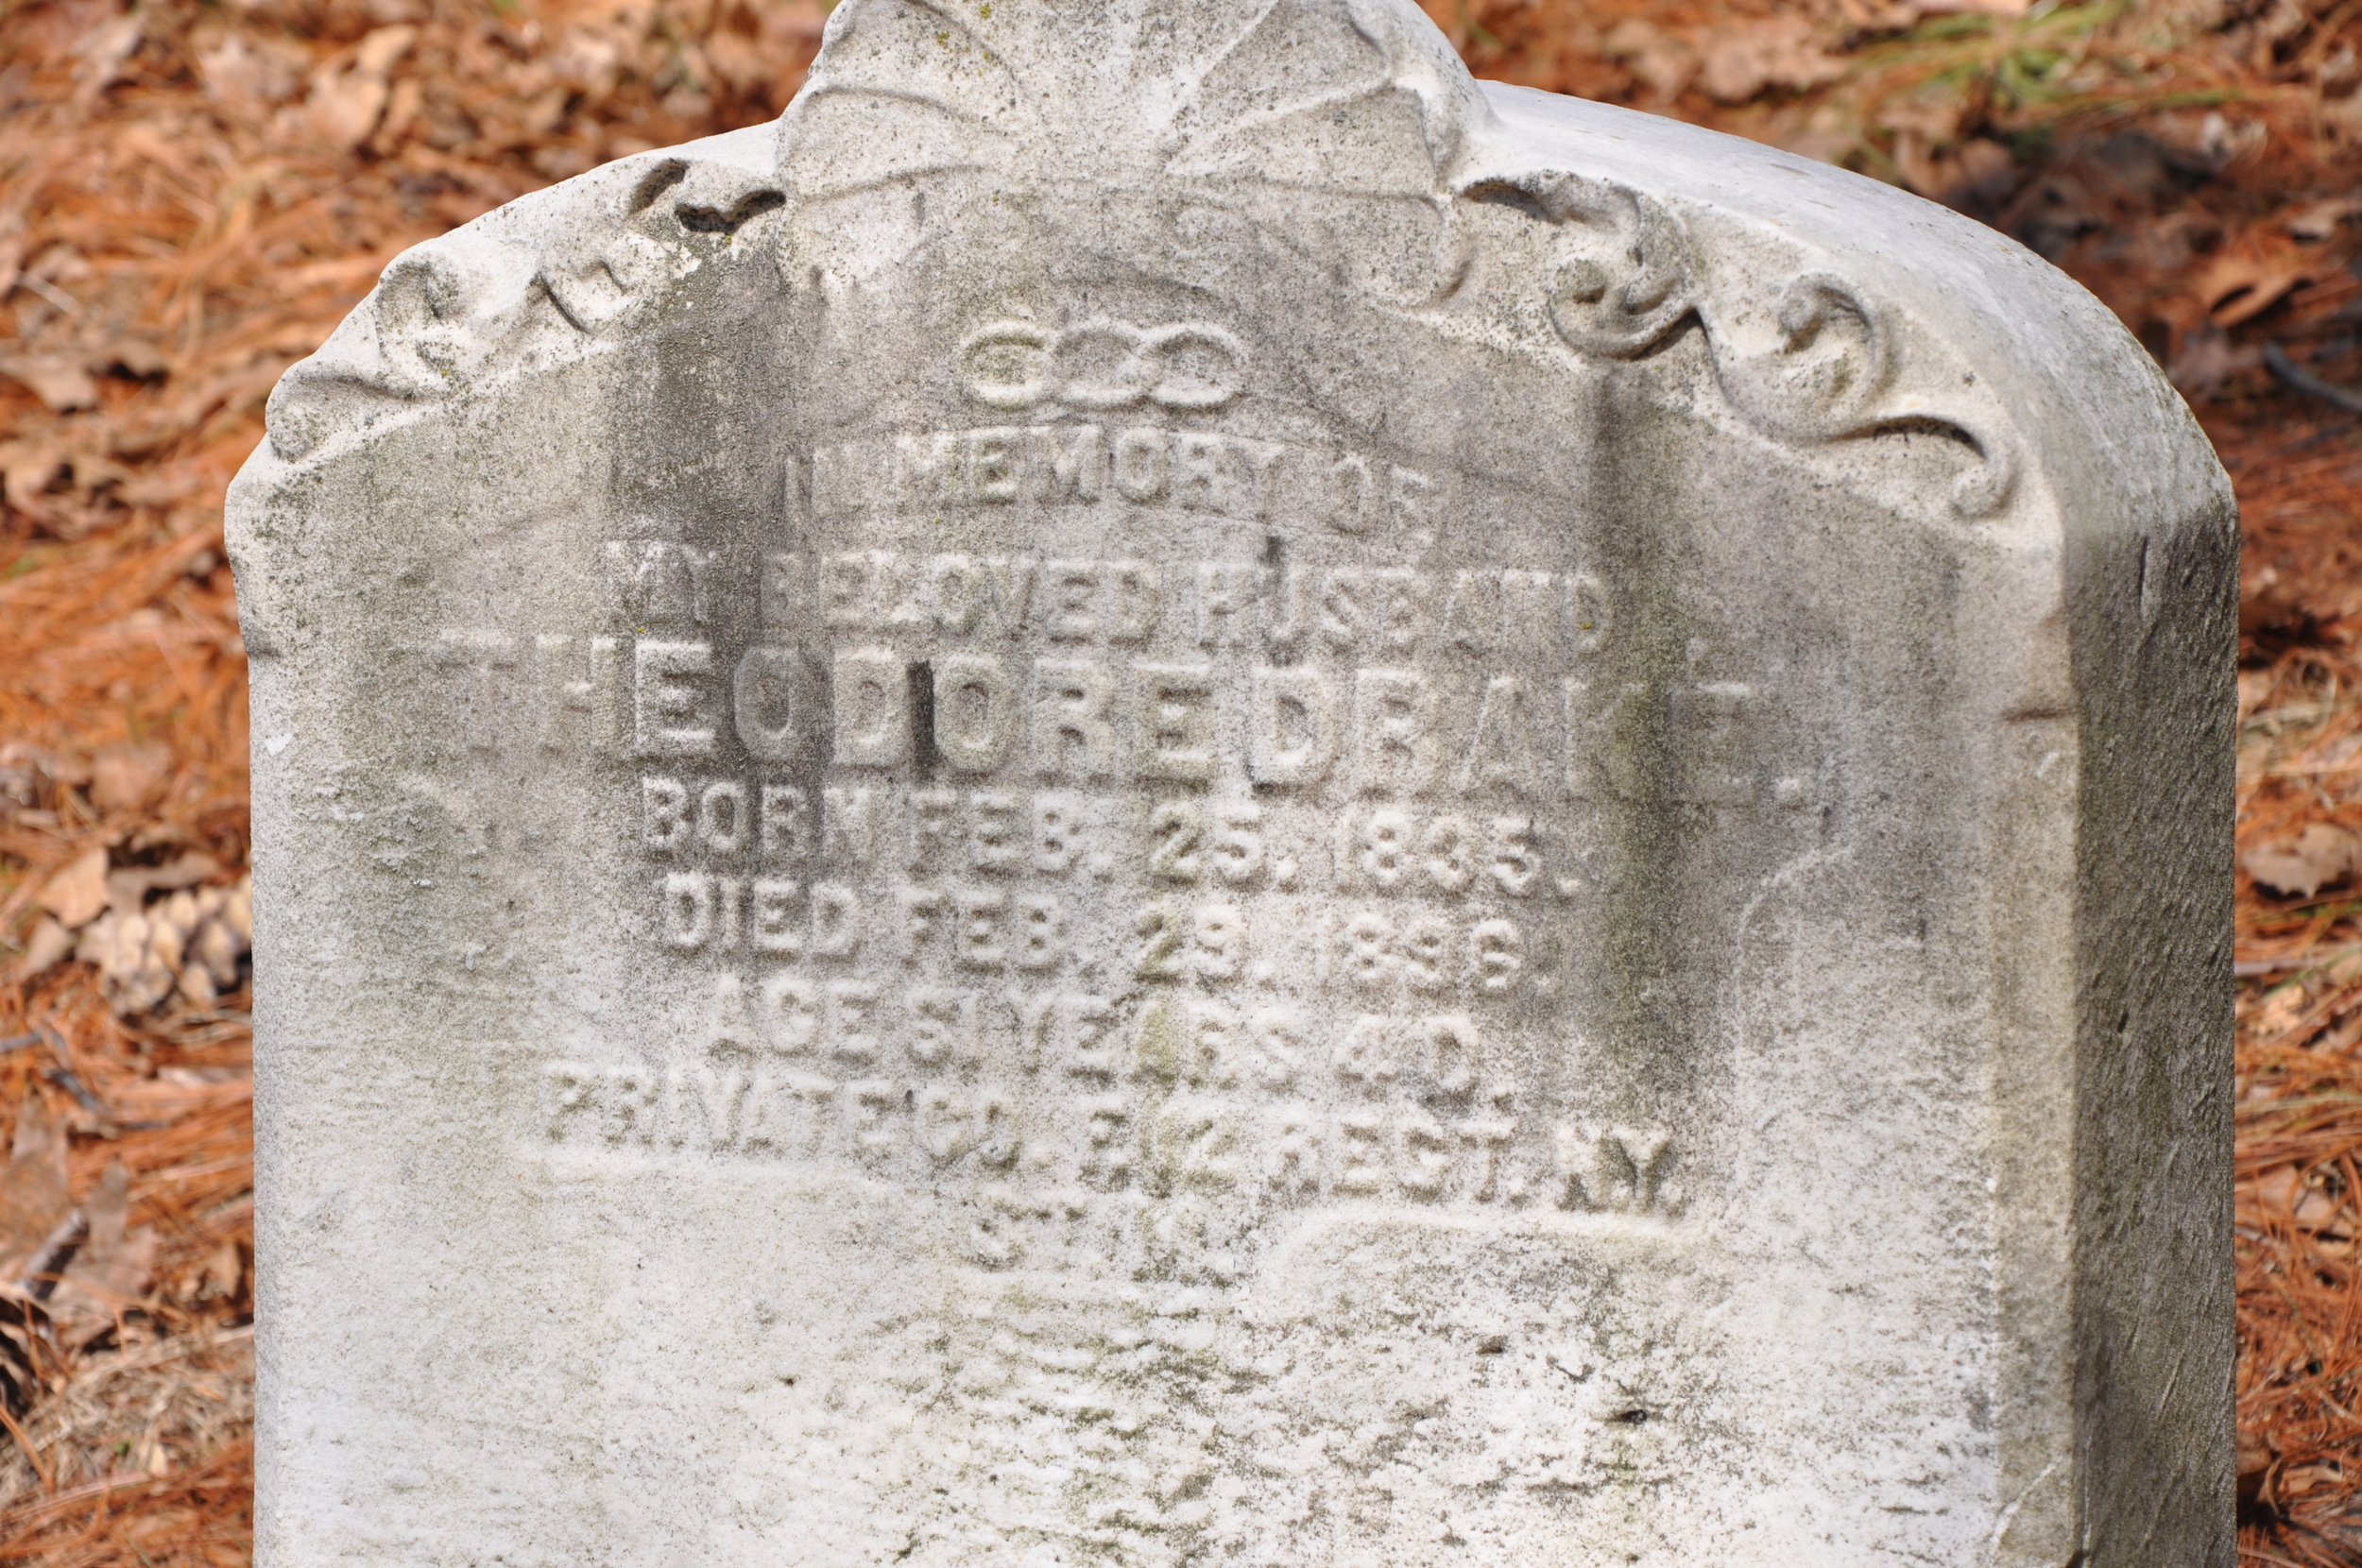 Theodore's tombstone in Greenwood Cemetery.